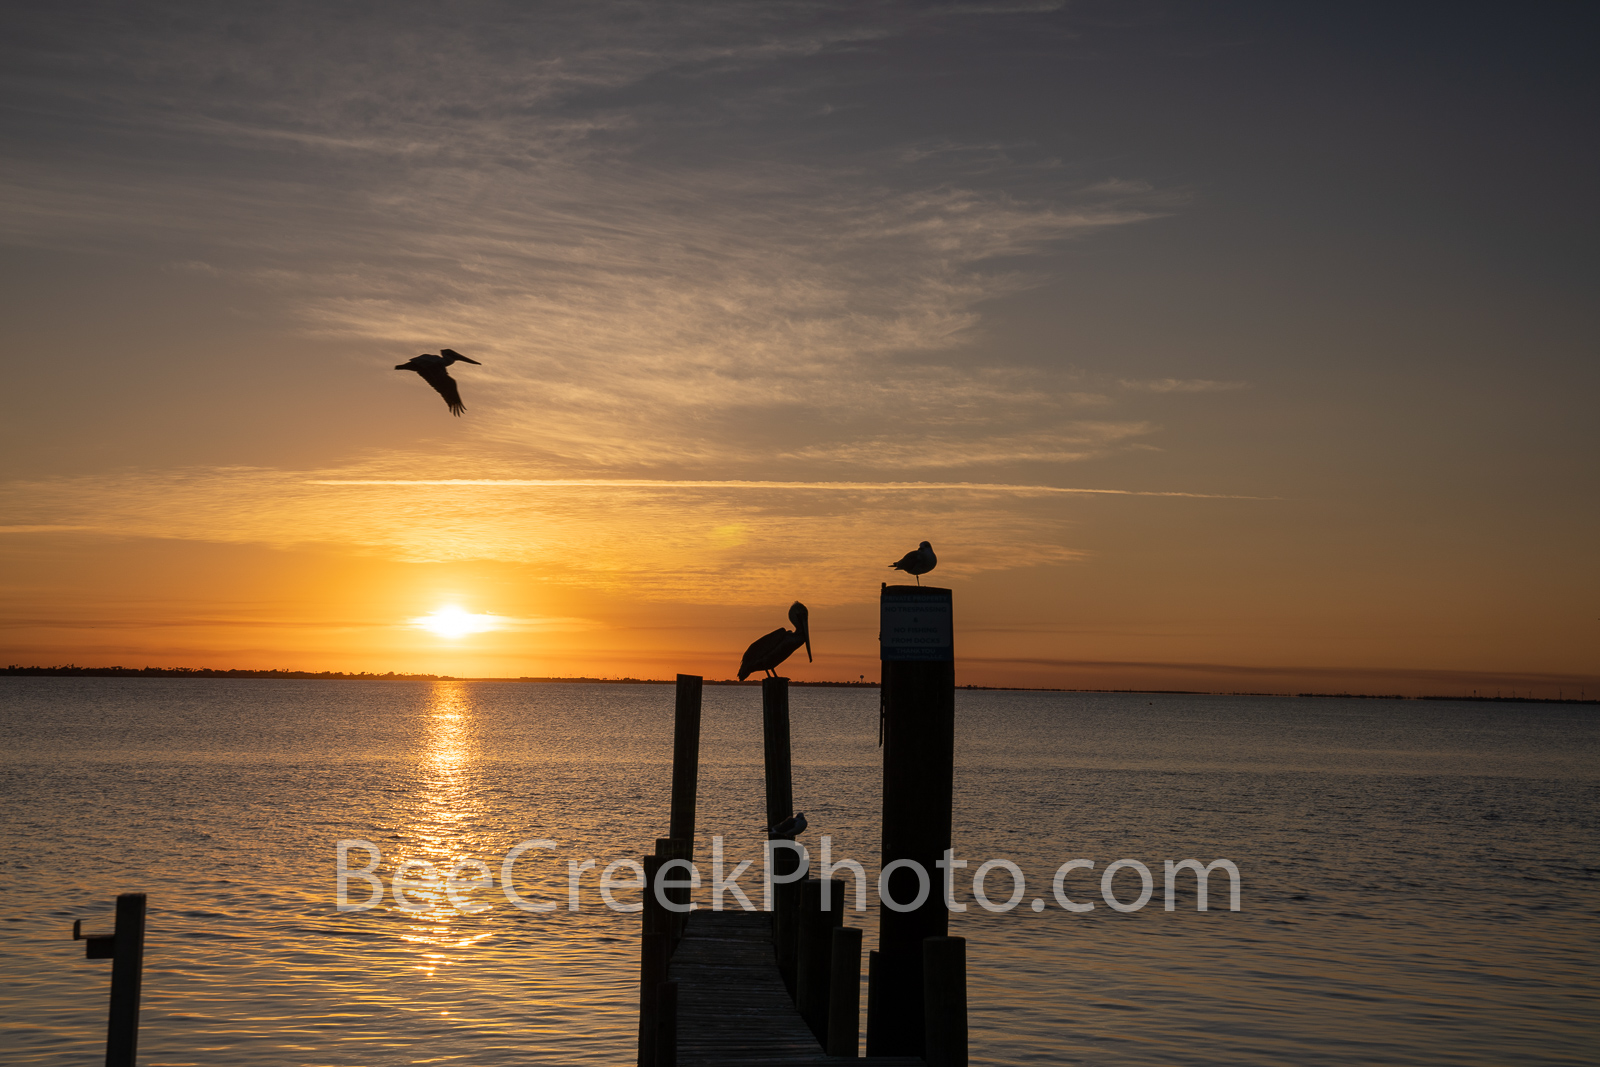 Sunset Over Laguna Madre 12 - Two birds enjoy the island sunset over laquna madre on South Padre island. We capture these silouette...